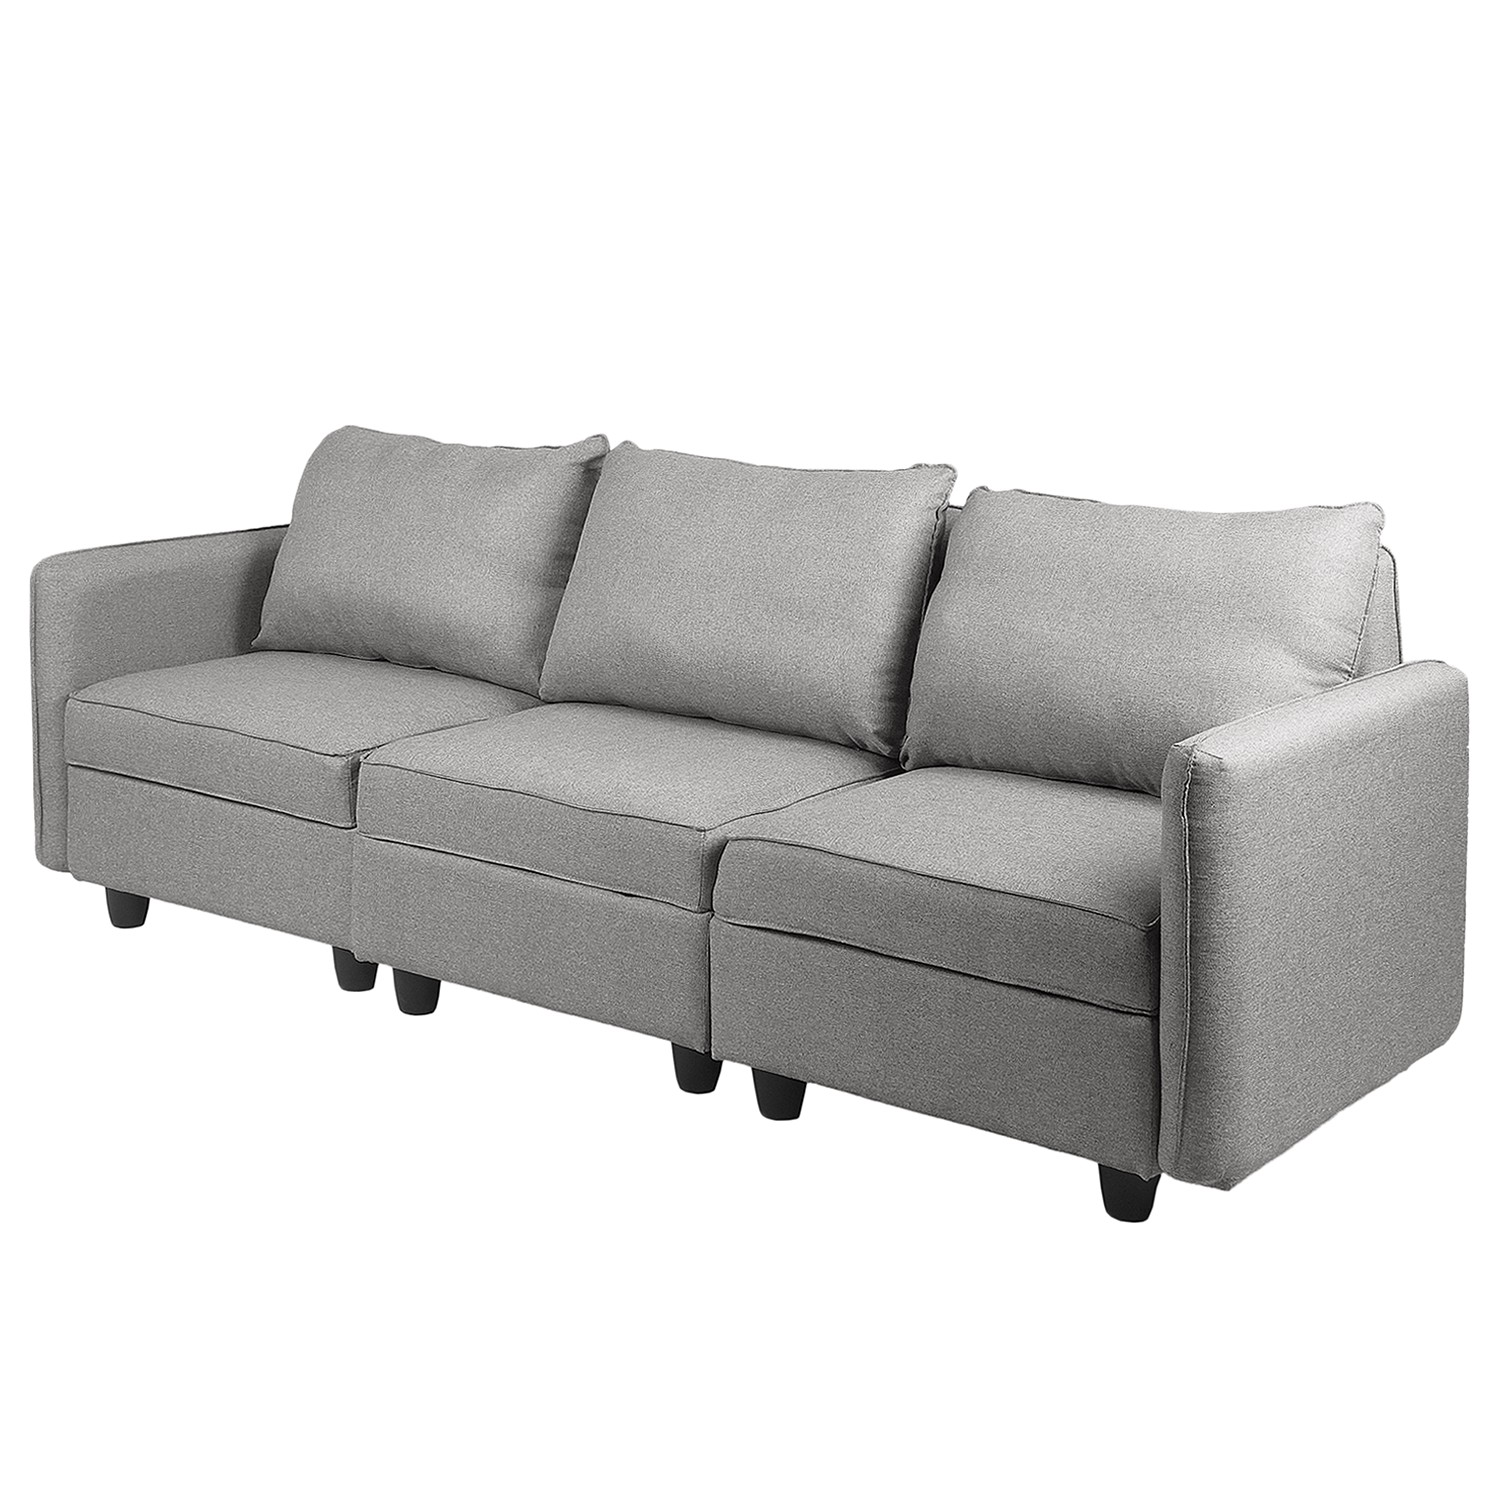 Sofa Lavara I (3 places)